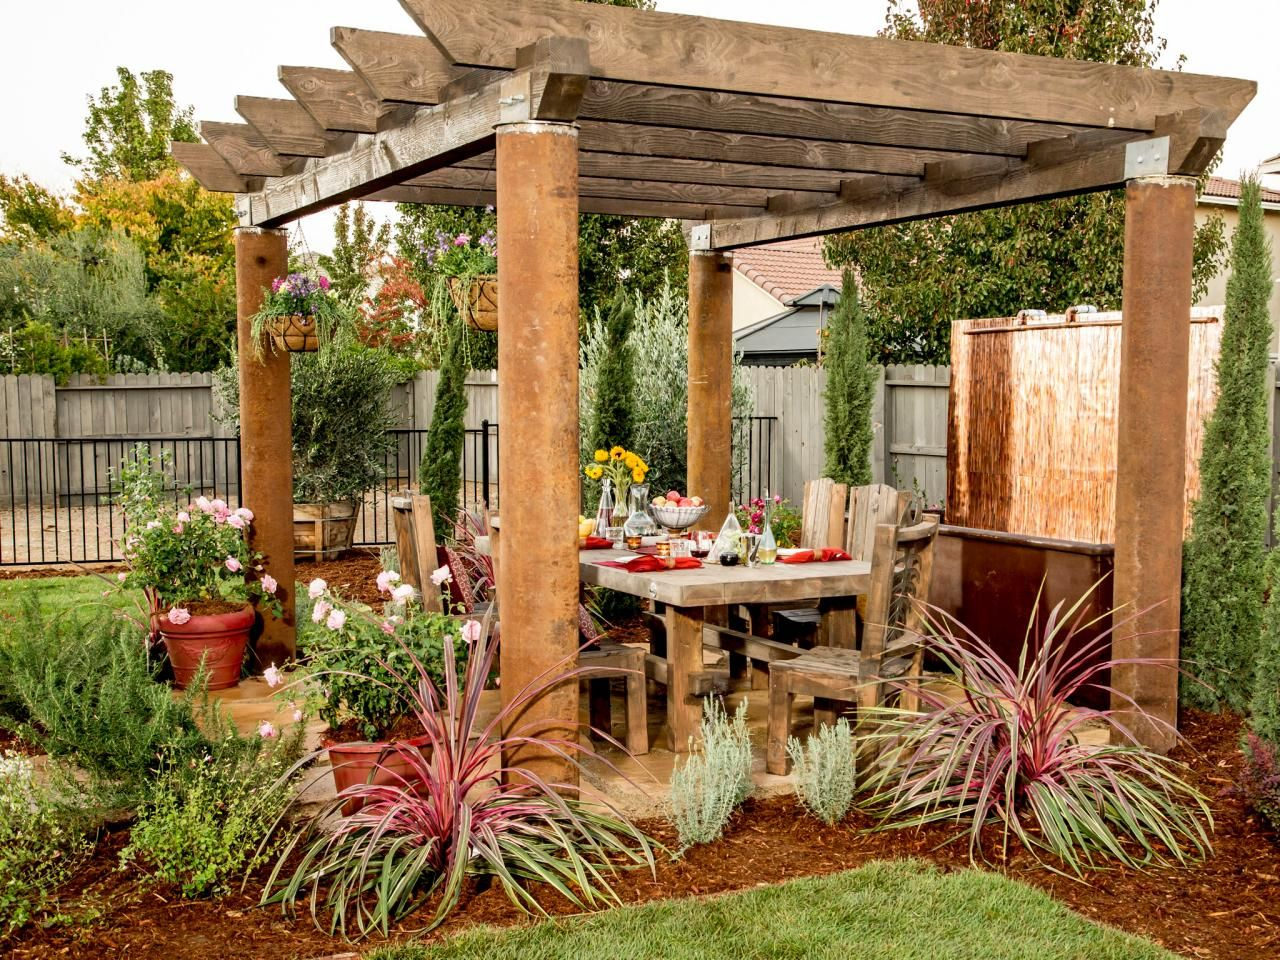 15 Before And After Backyard Makeovers Relaxing Backyard Hardscape Design Backyard Landscaping